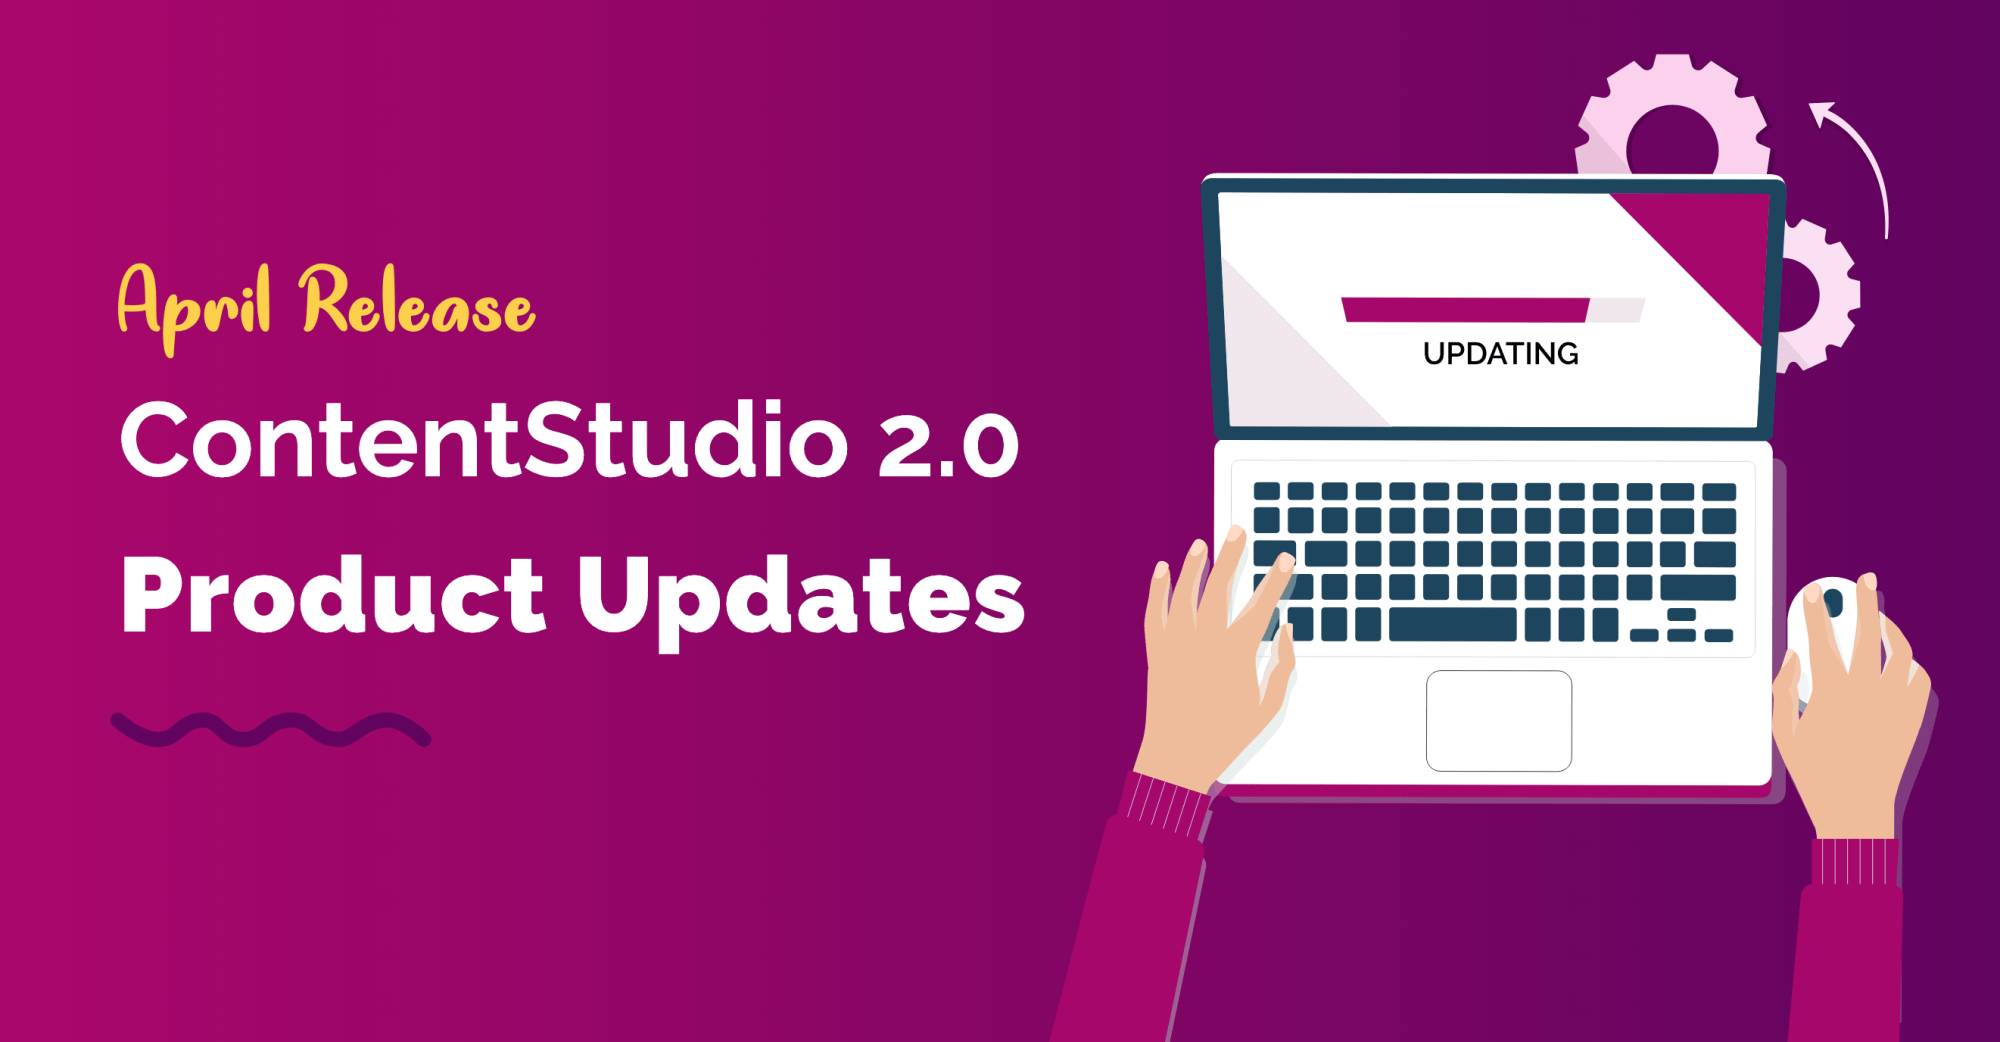 ContentStudio Updates - April